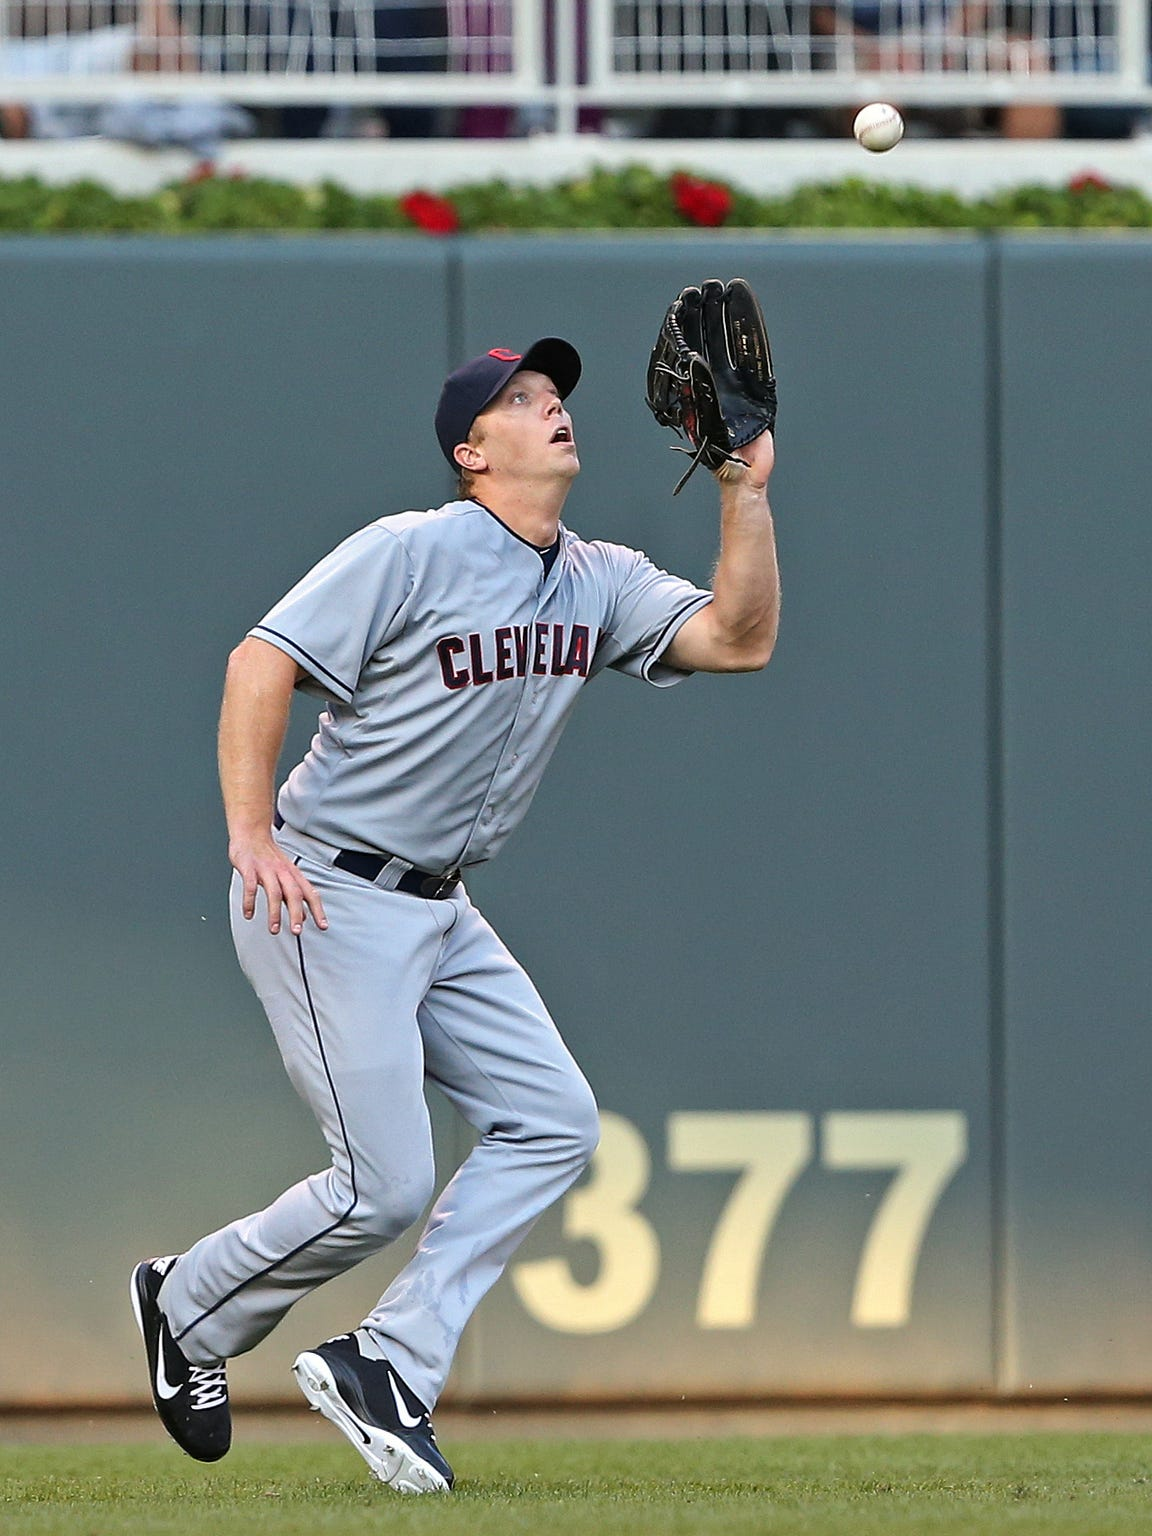 Cleveland Indians left fielder Shelley Duncan (47) catches a fly ball hit in 2012.